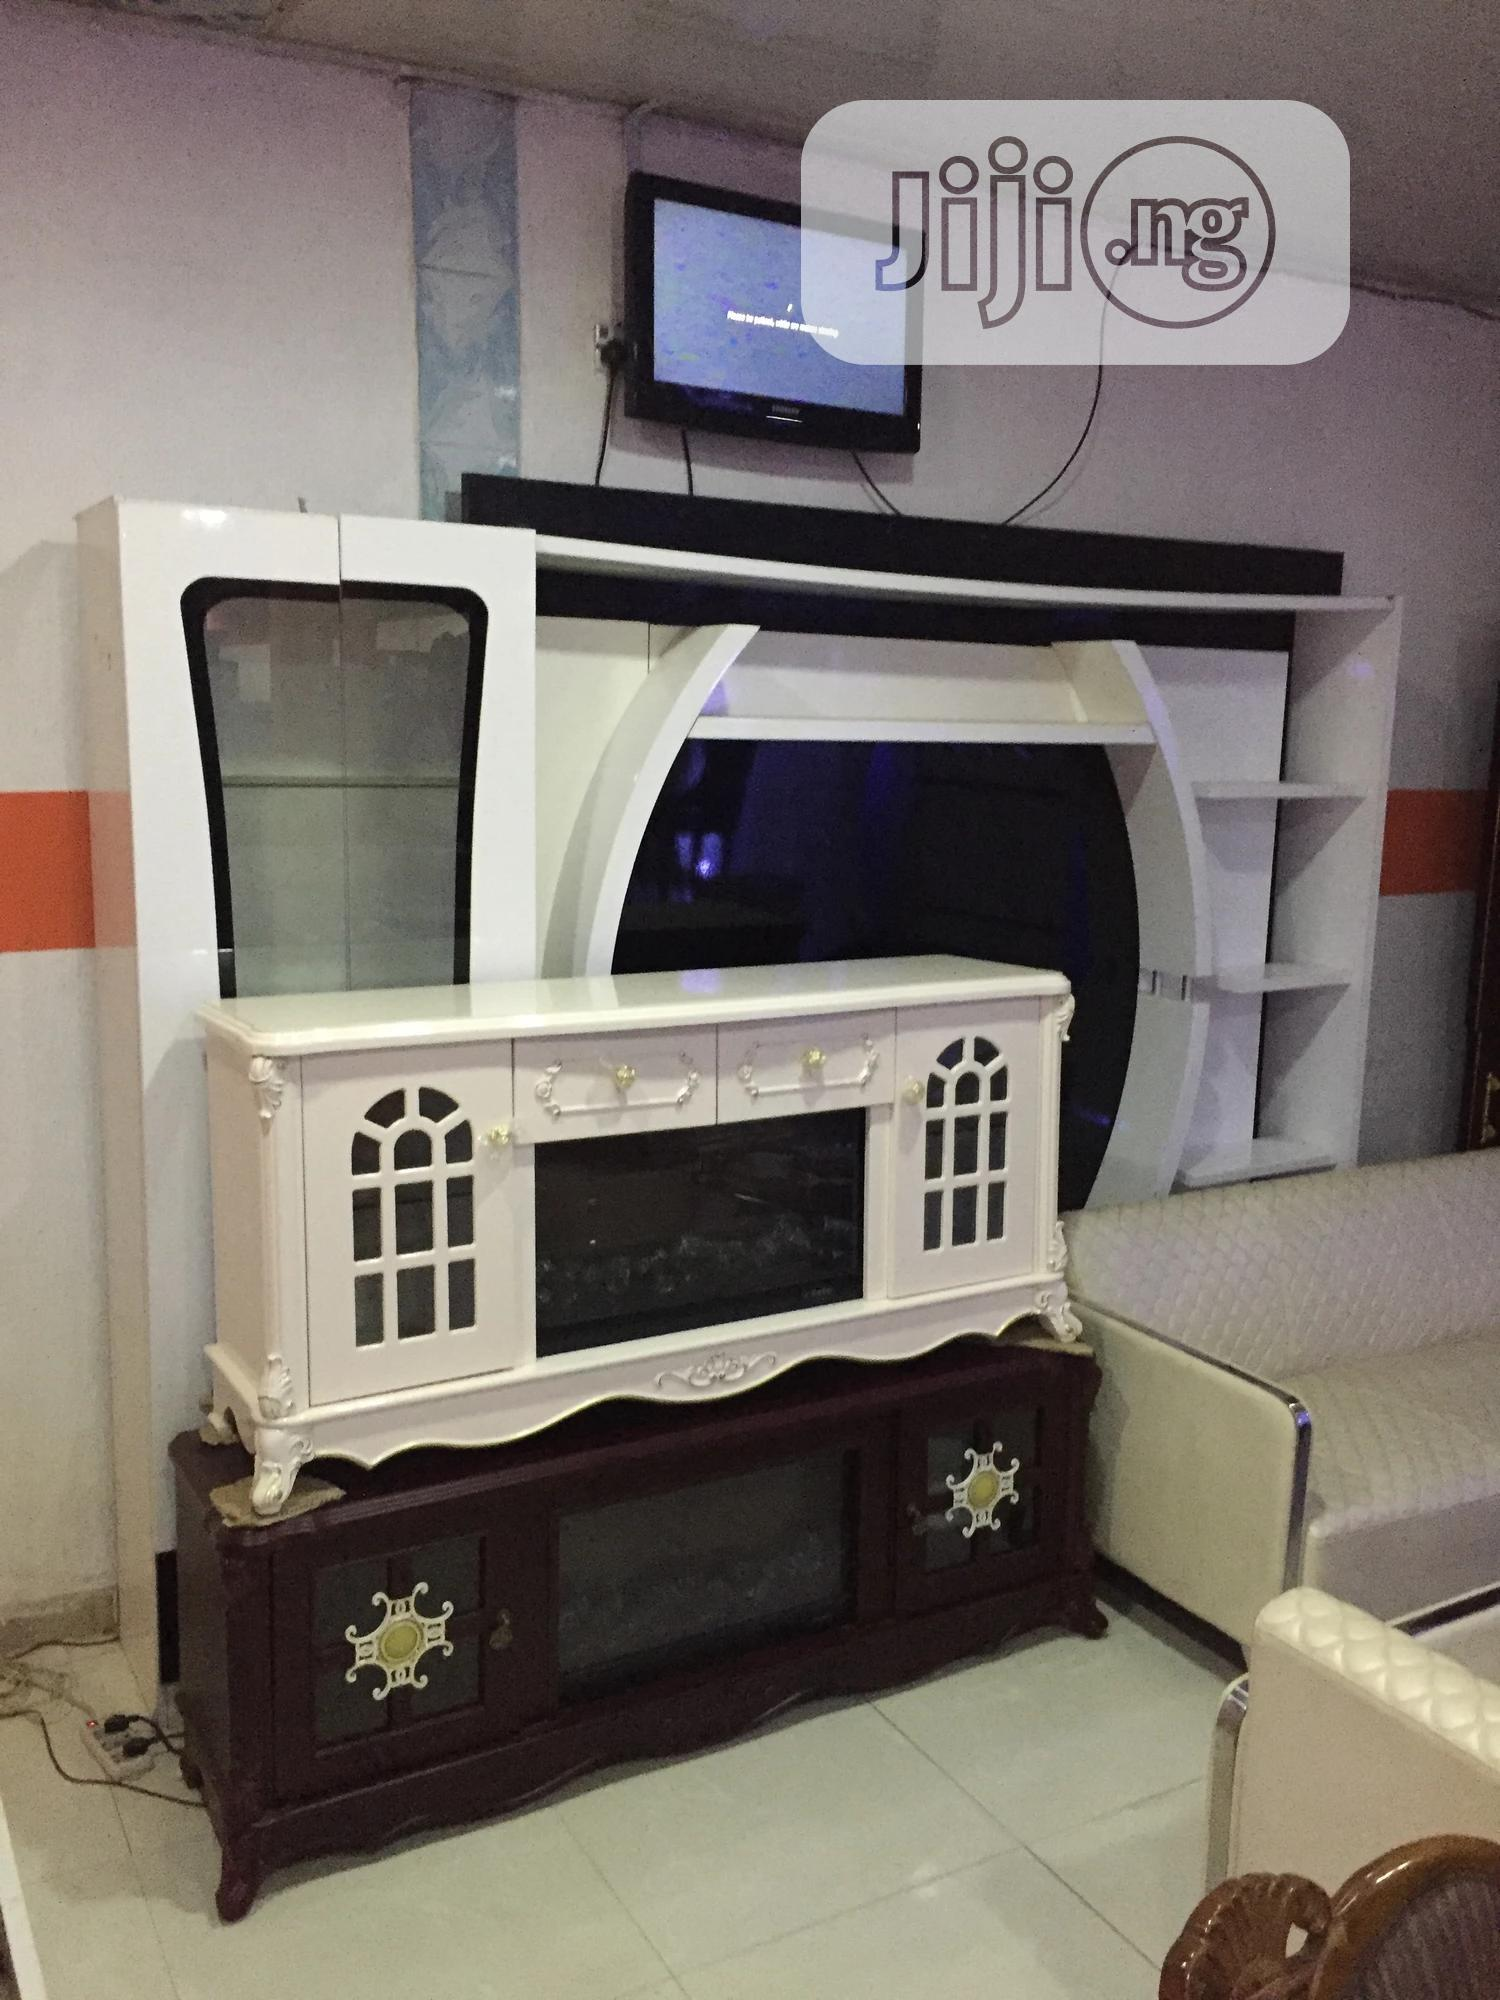 Orignal Fire Plate Tv Stand With Remote Controller | Furniture for sale in Ikeja, Lagos State, Nigeria